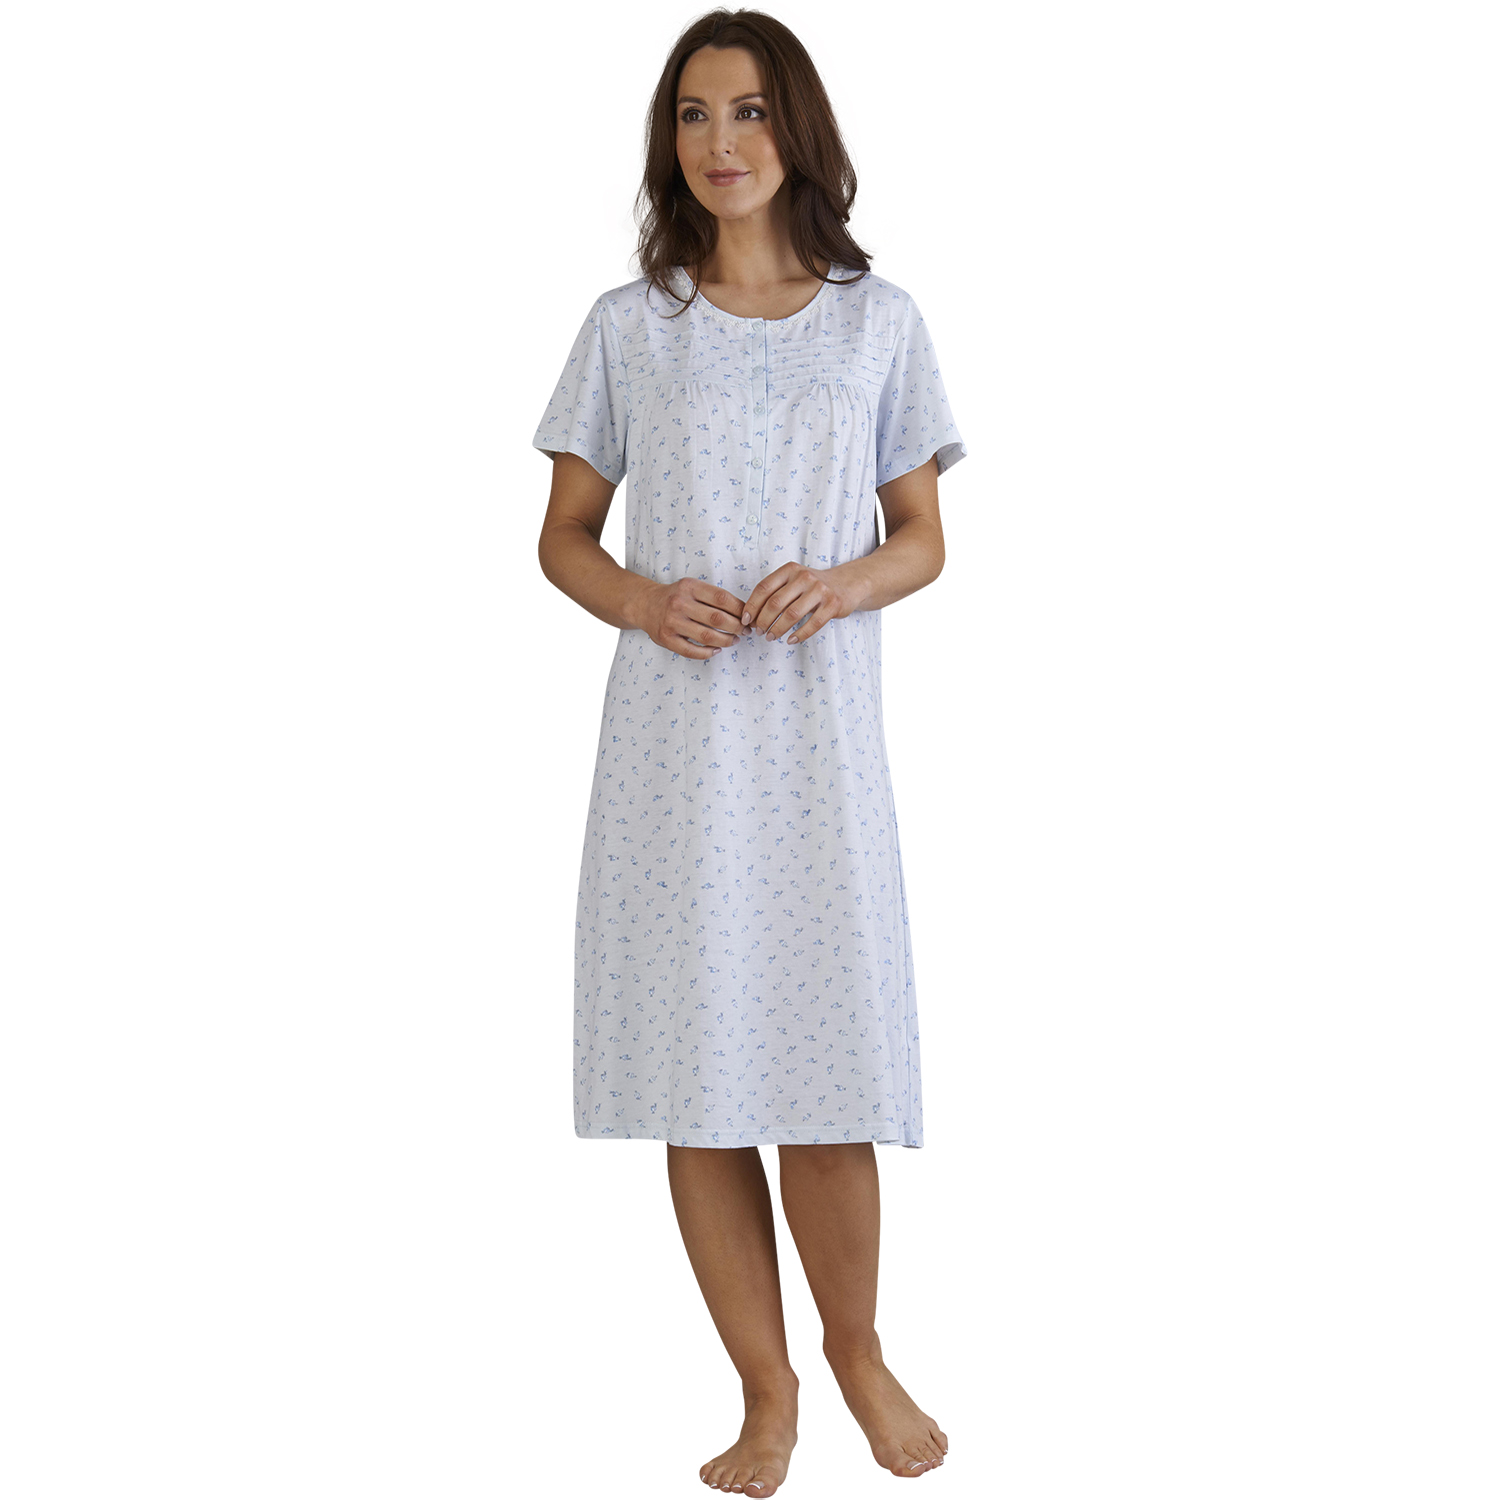 Girls' Nightgowns. Showing 48 of results that match your query. Search Product Result Girl's Emoji Sleepover Squad Short Sleep Nightgown (Big Girl & Little Girl) New. Product Image Girl 's Emoji Sleepover Squad Short Sleep Nightgown (Big Girl & Little Girl) See Details. Product - Toast & Jammies Girls Long Sleeve Granny Nightgown.